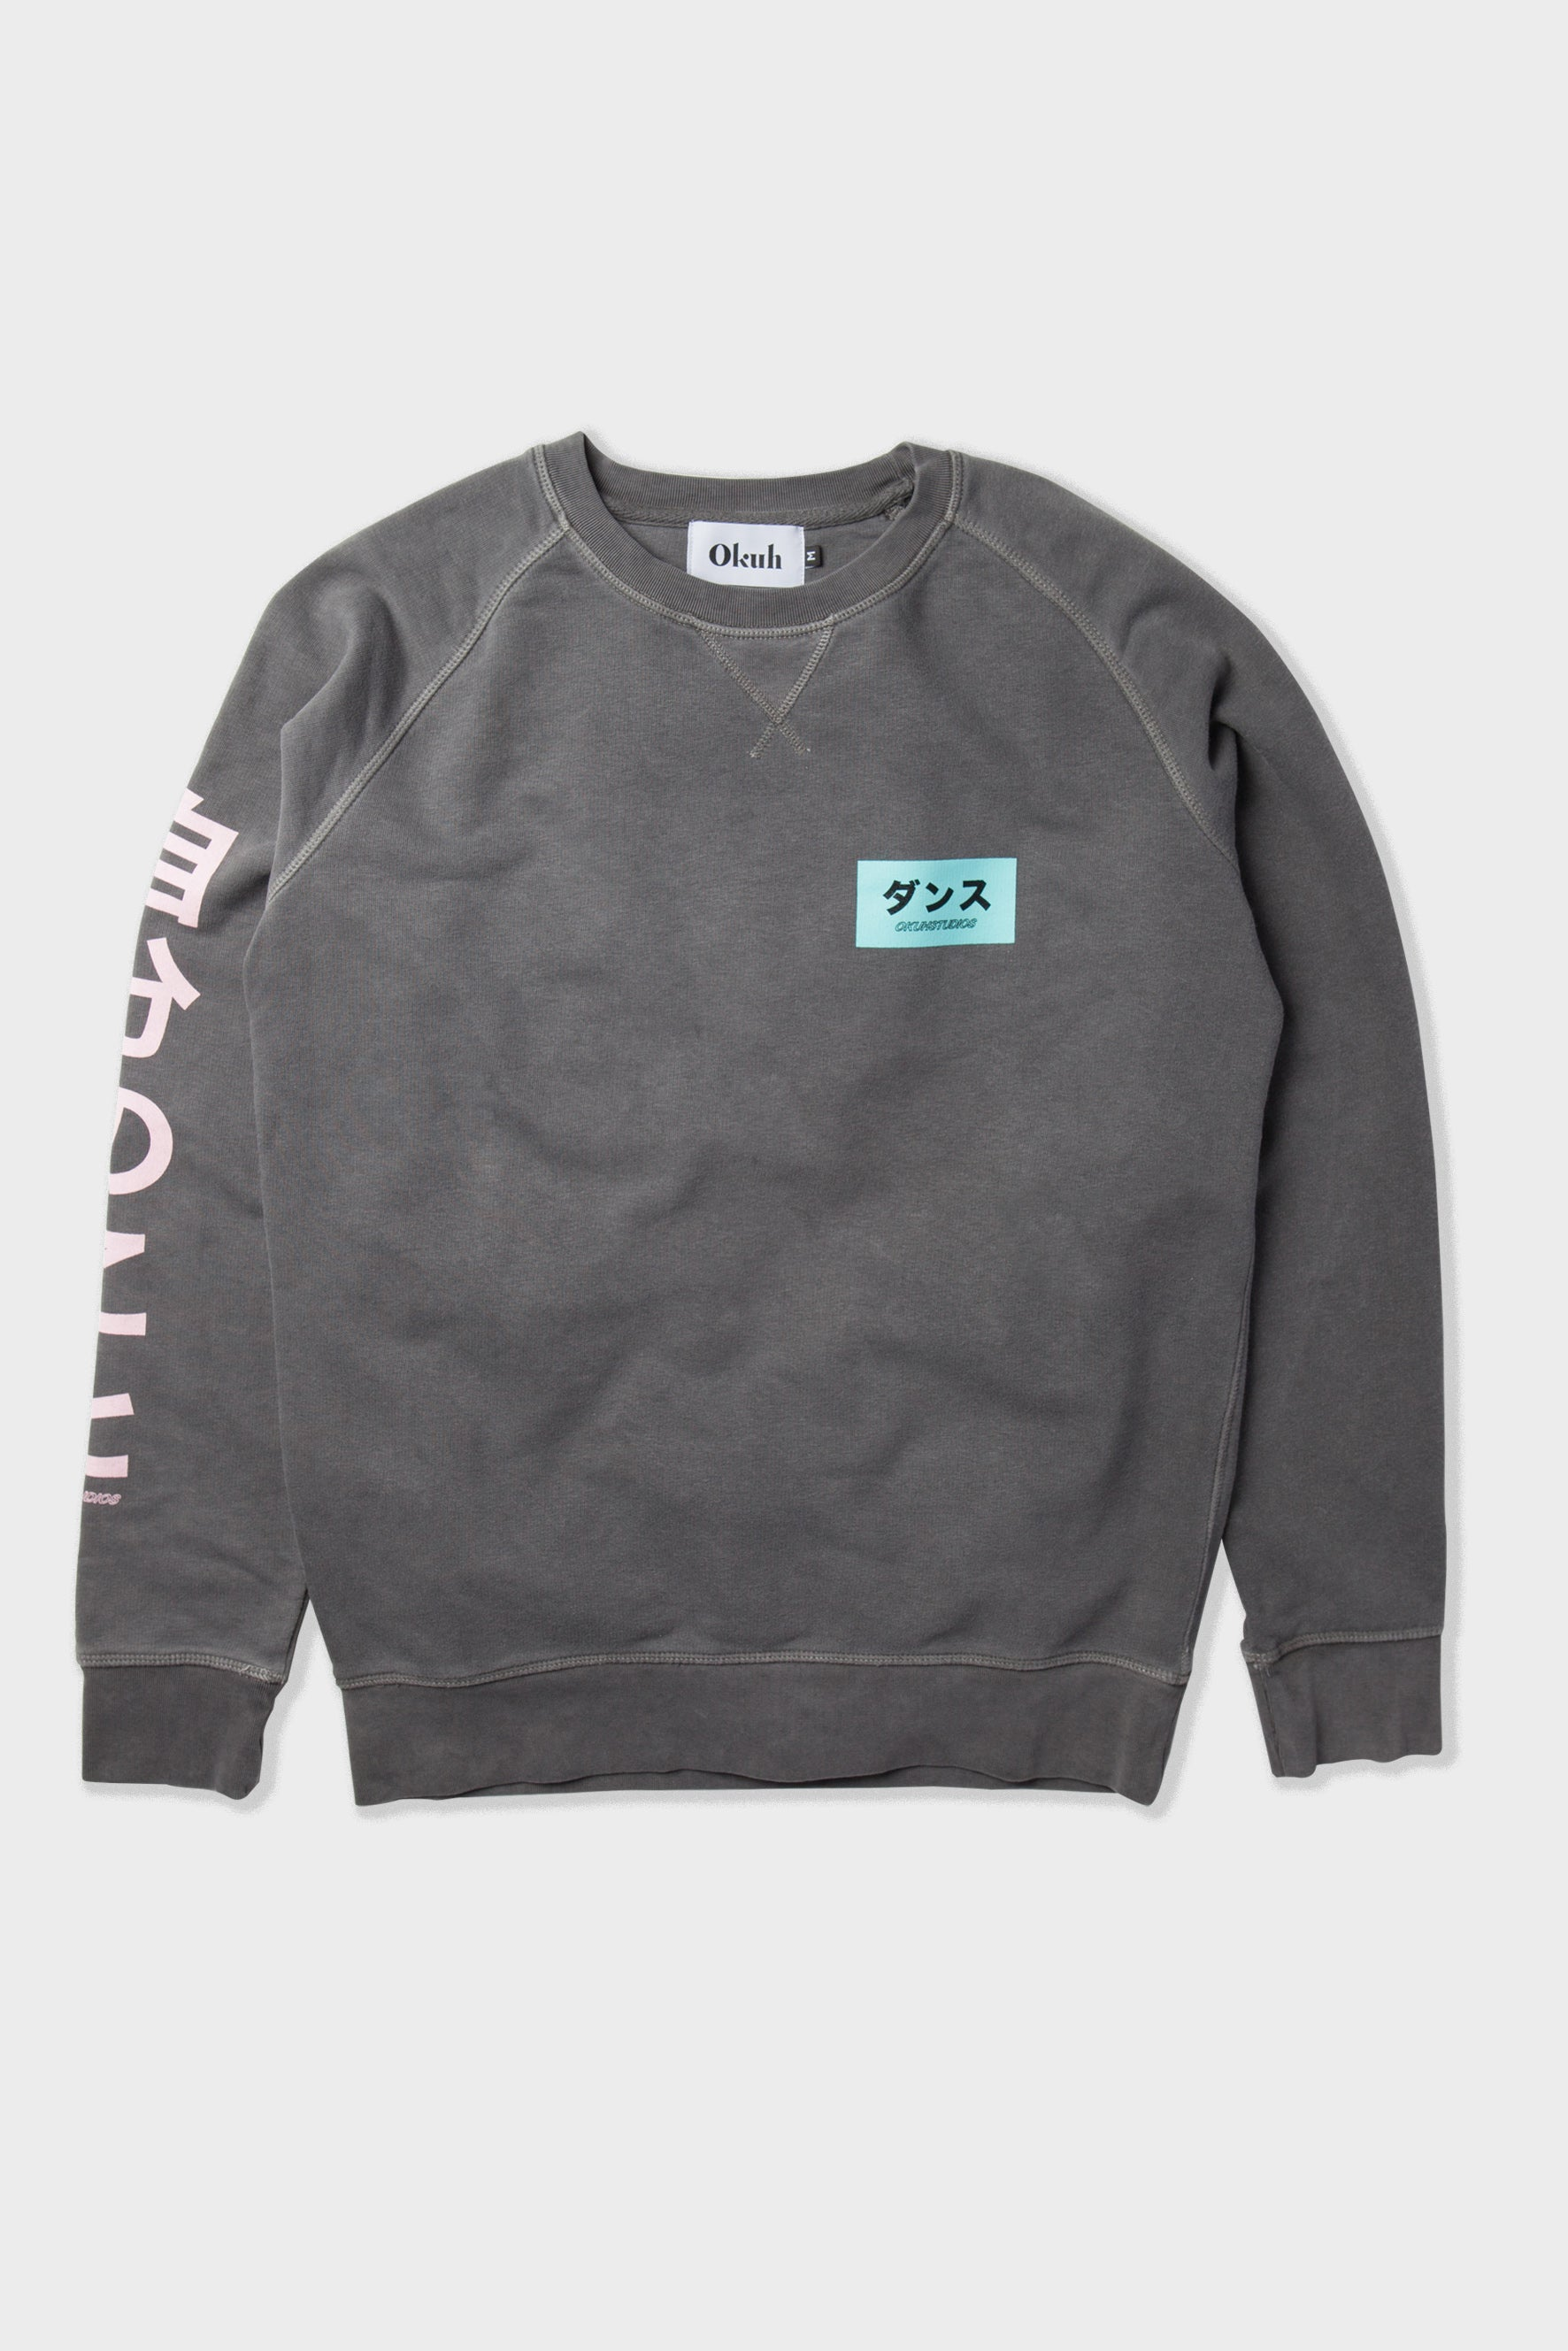 Nova - Washed Black Clash Colour Sweatshirt